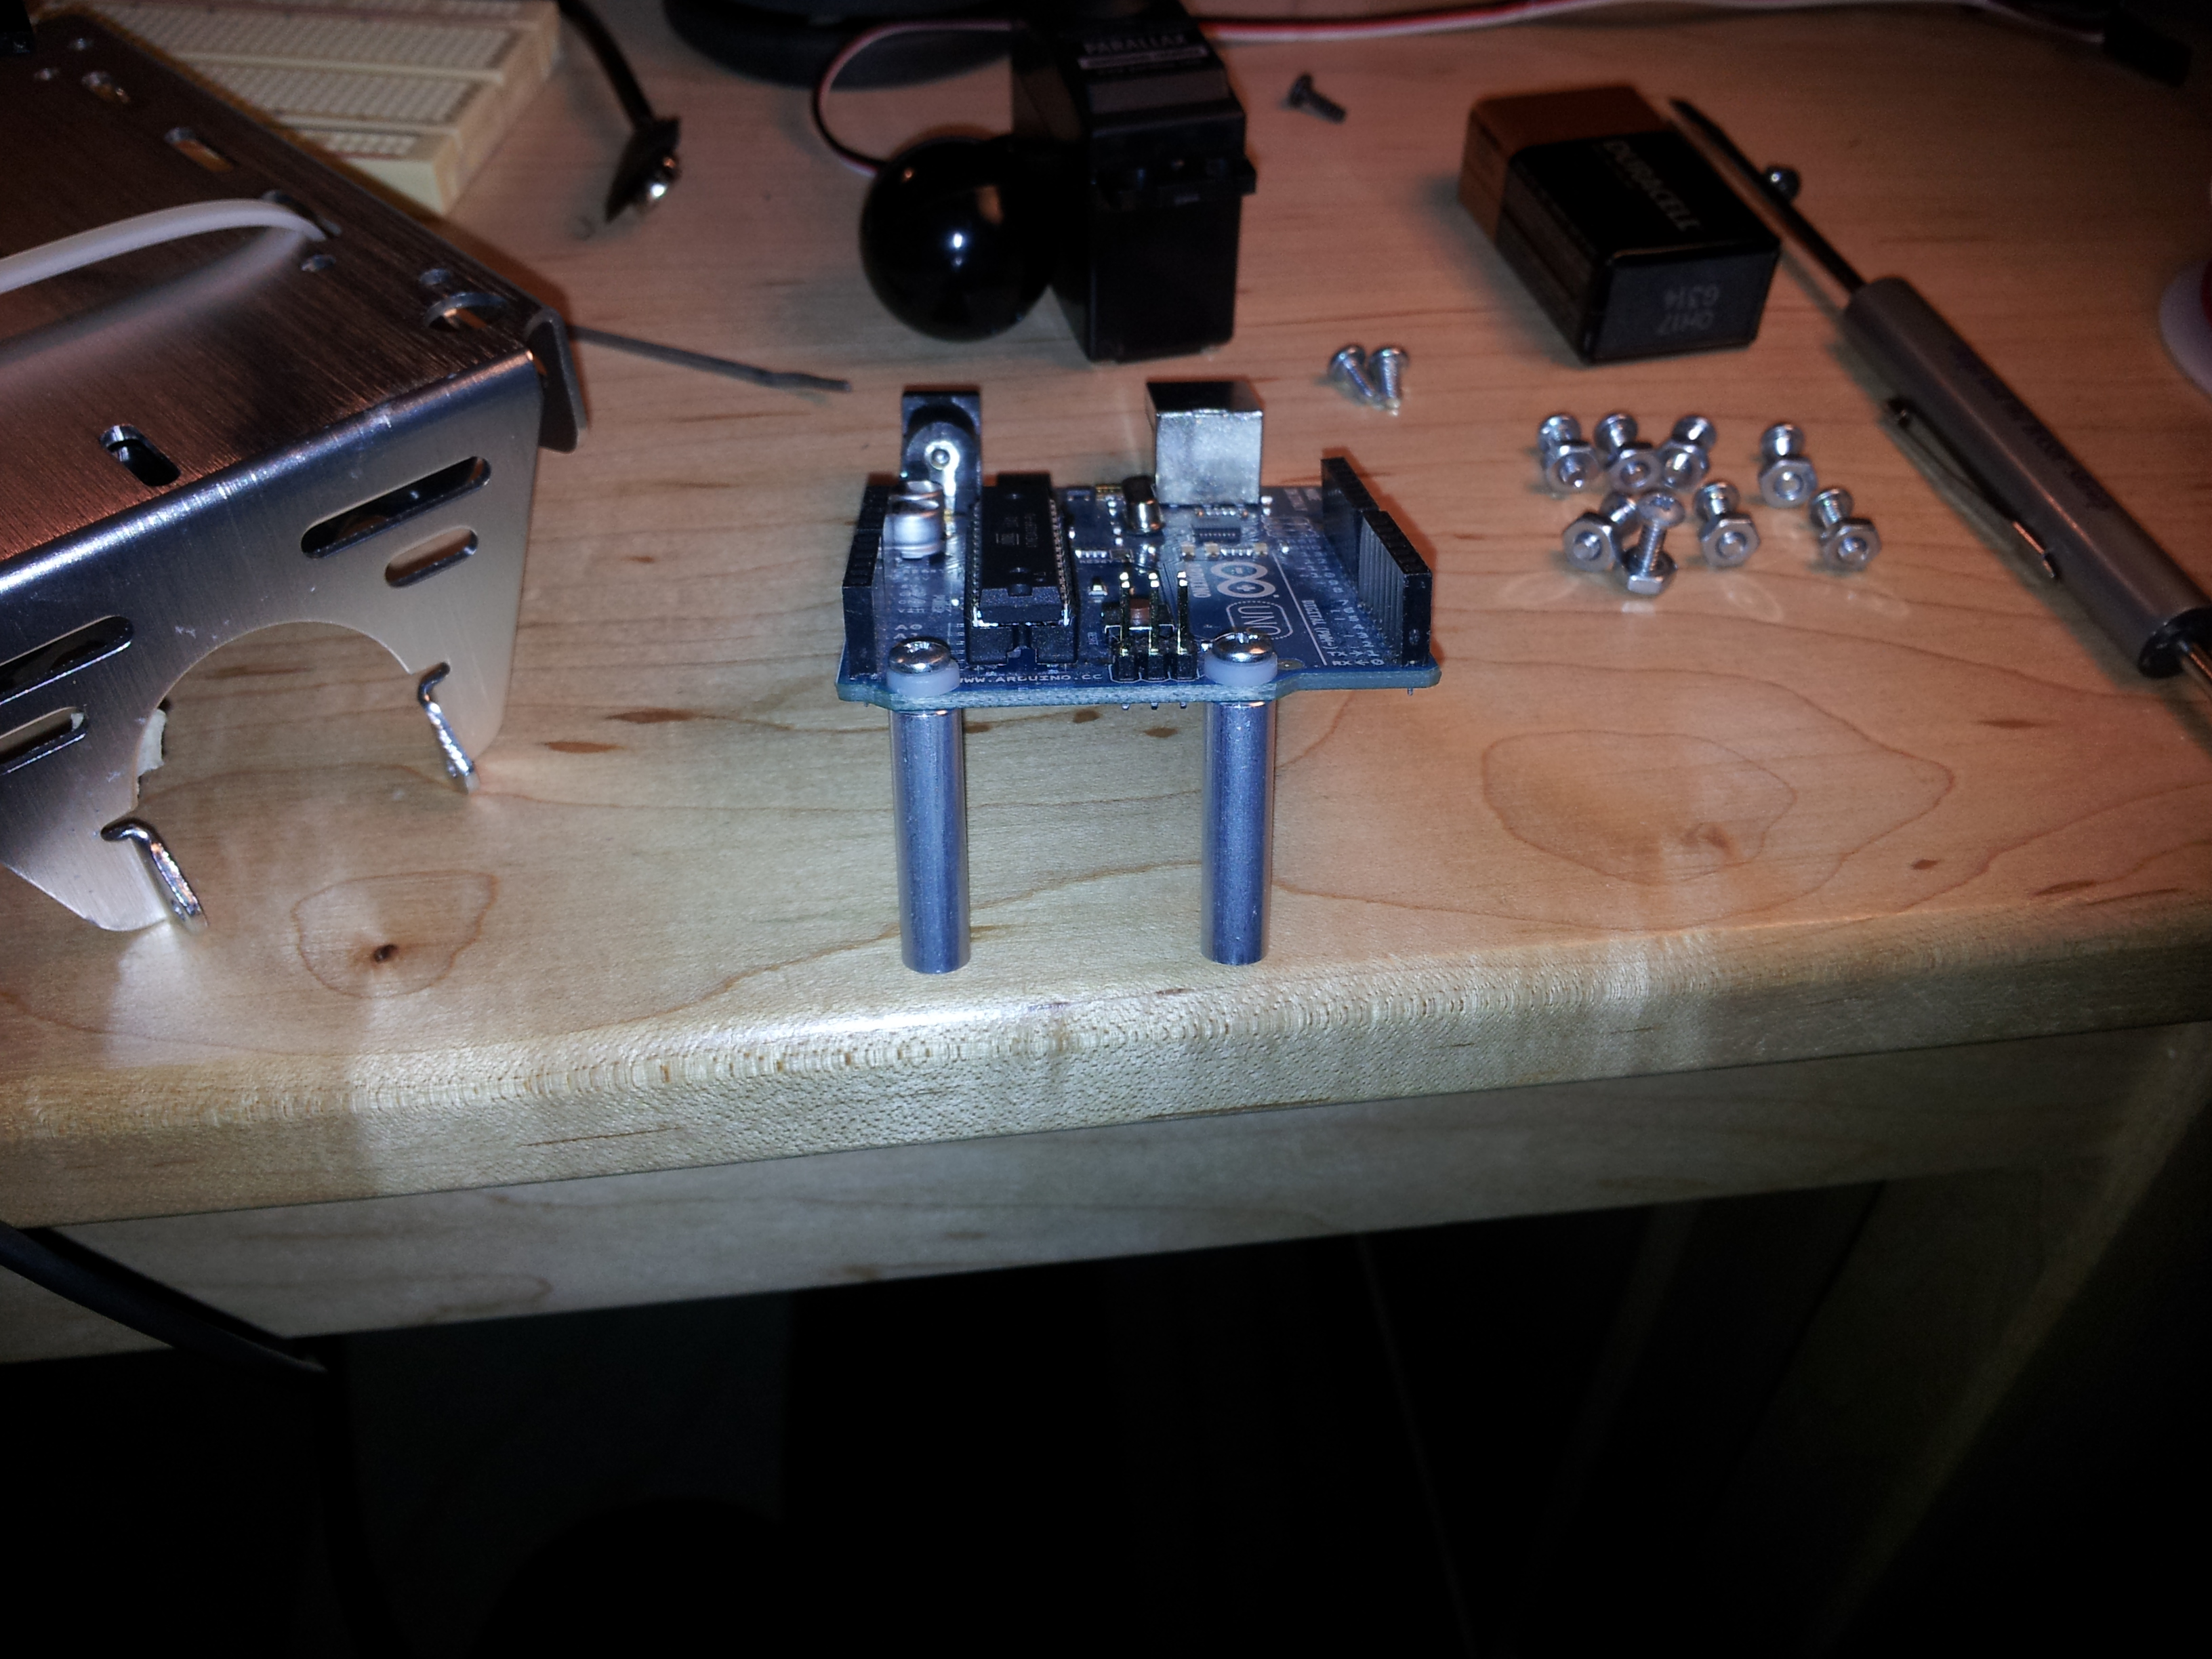 Picture of Attach the Arduino to the Chassis